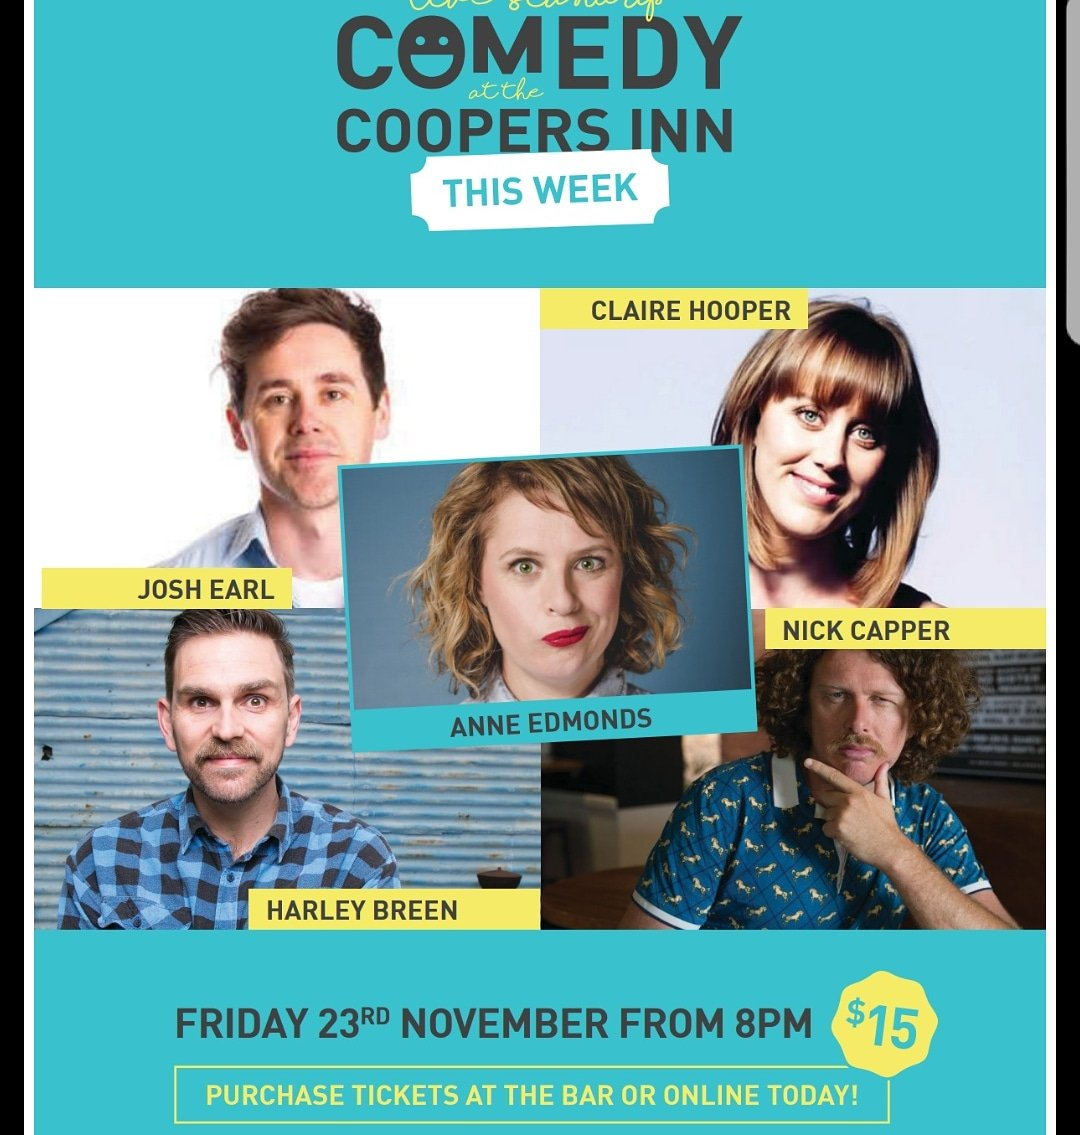 Huge show friday! Some of our favourites. Huge names (and capper)